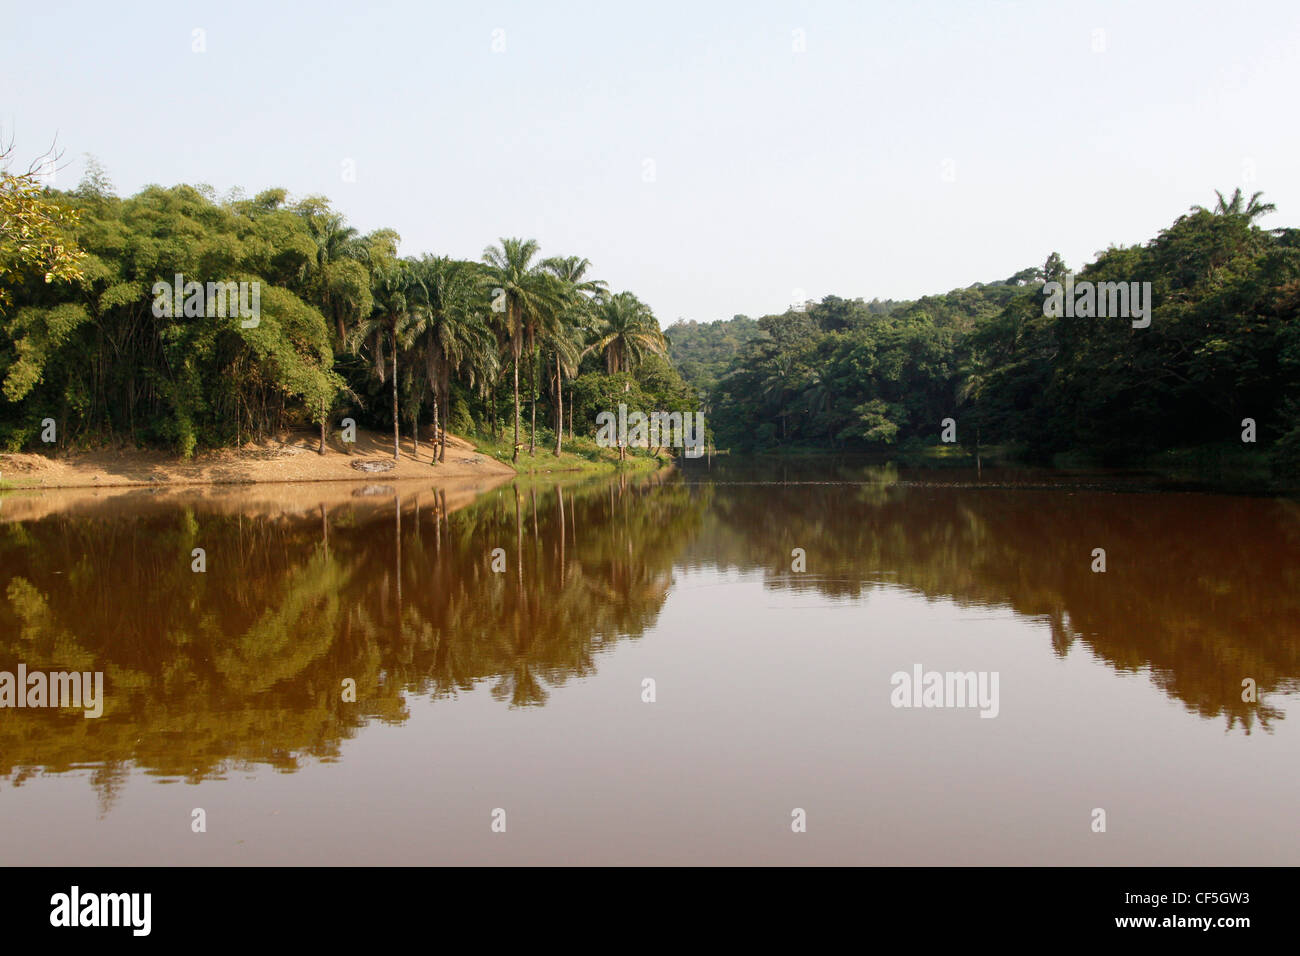 A view of the Lukuya river outside of the capital Kinshasa. Democratic Republic of Congo. - Stock Image